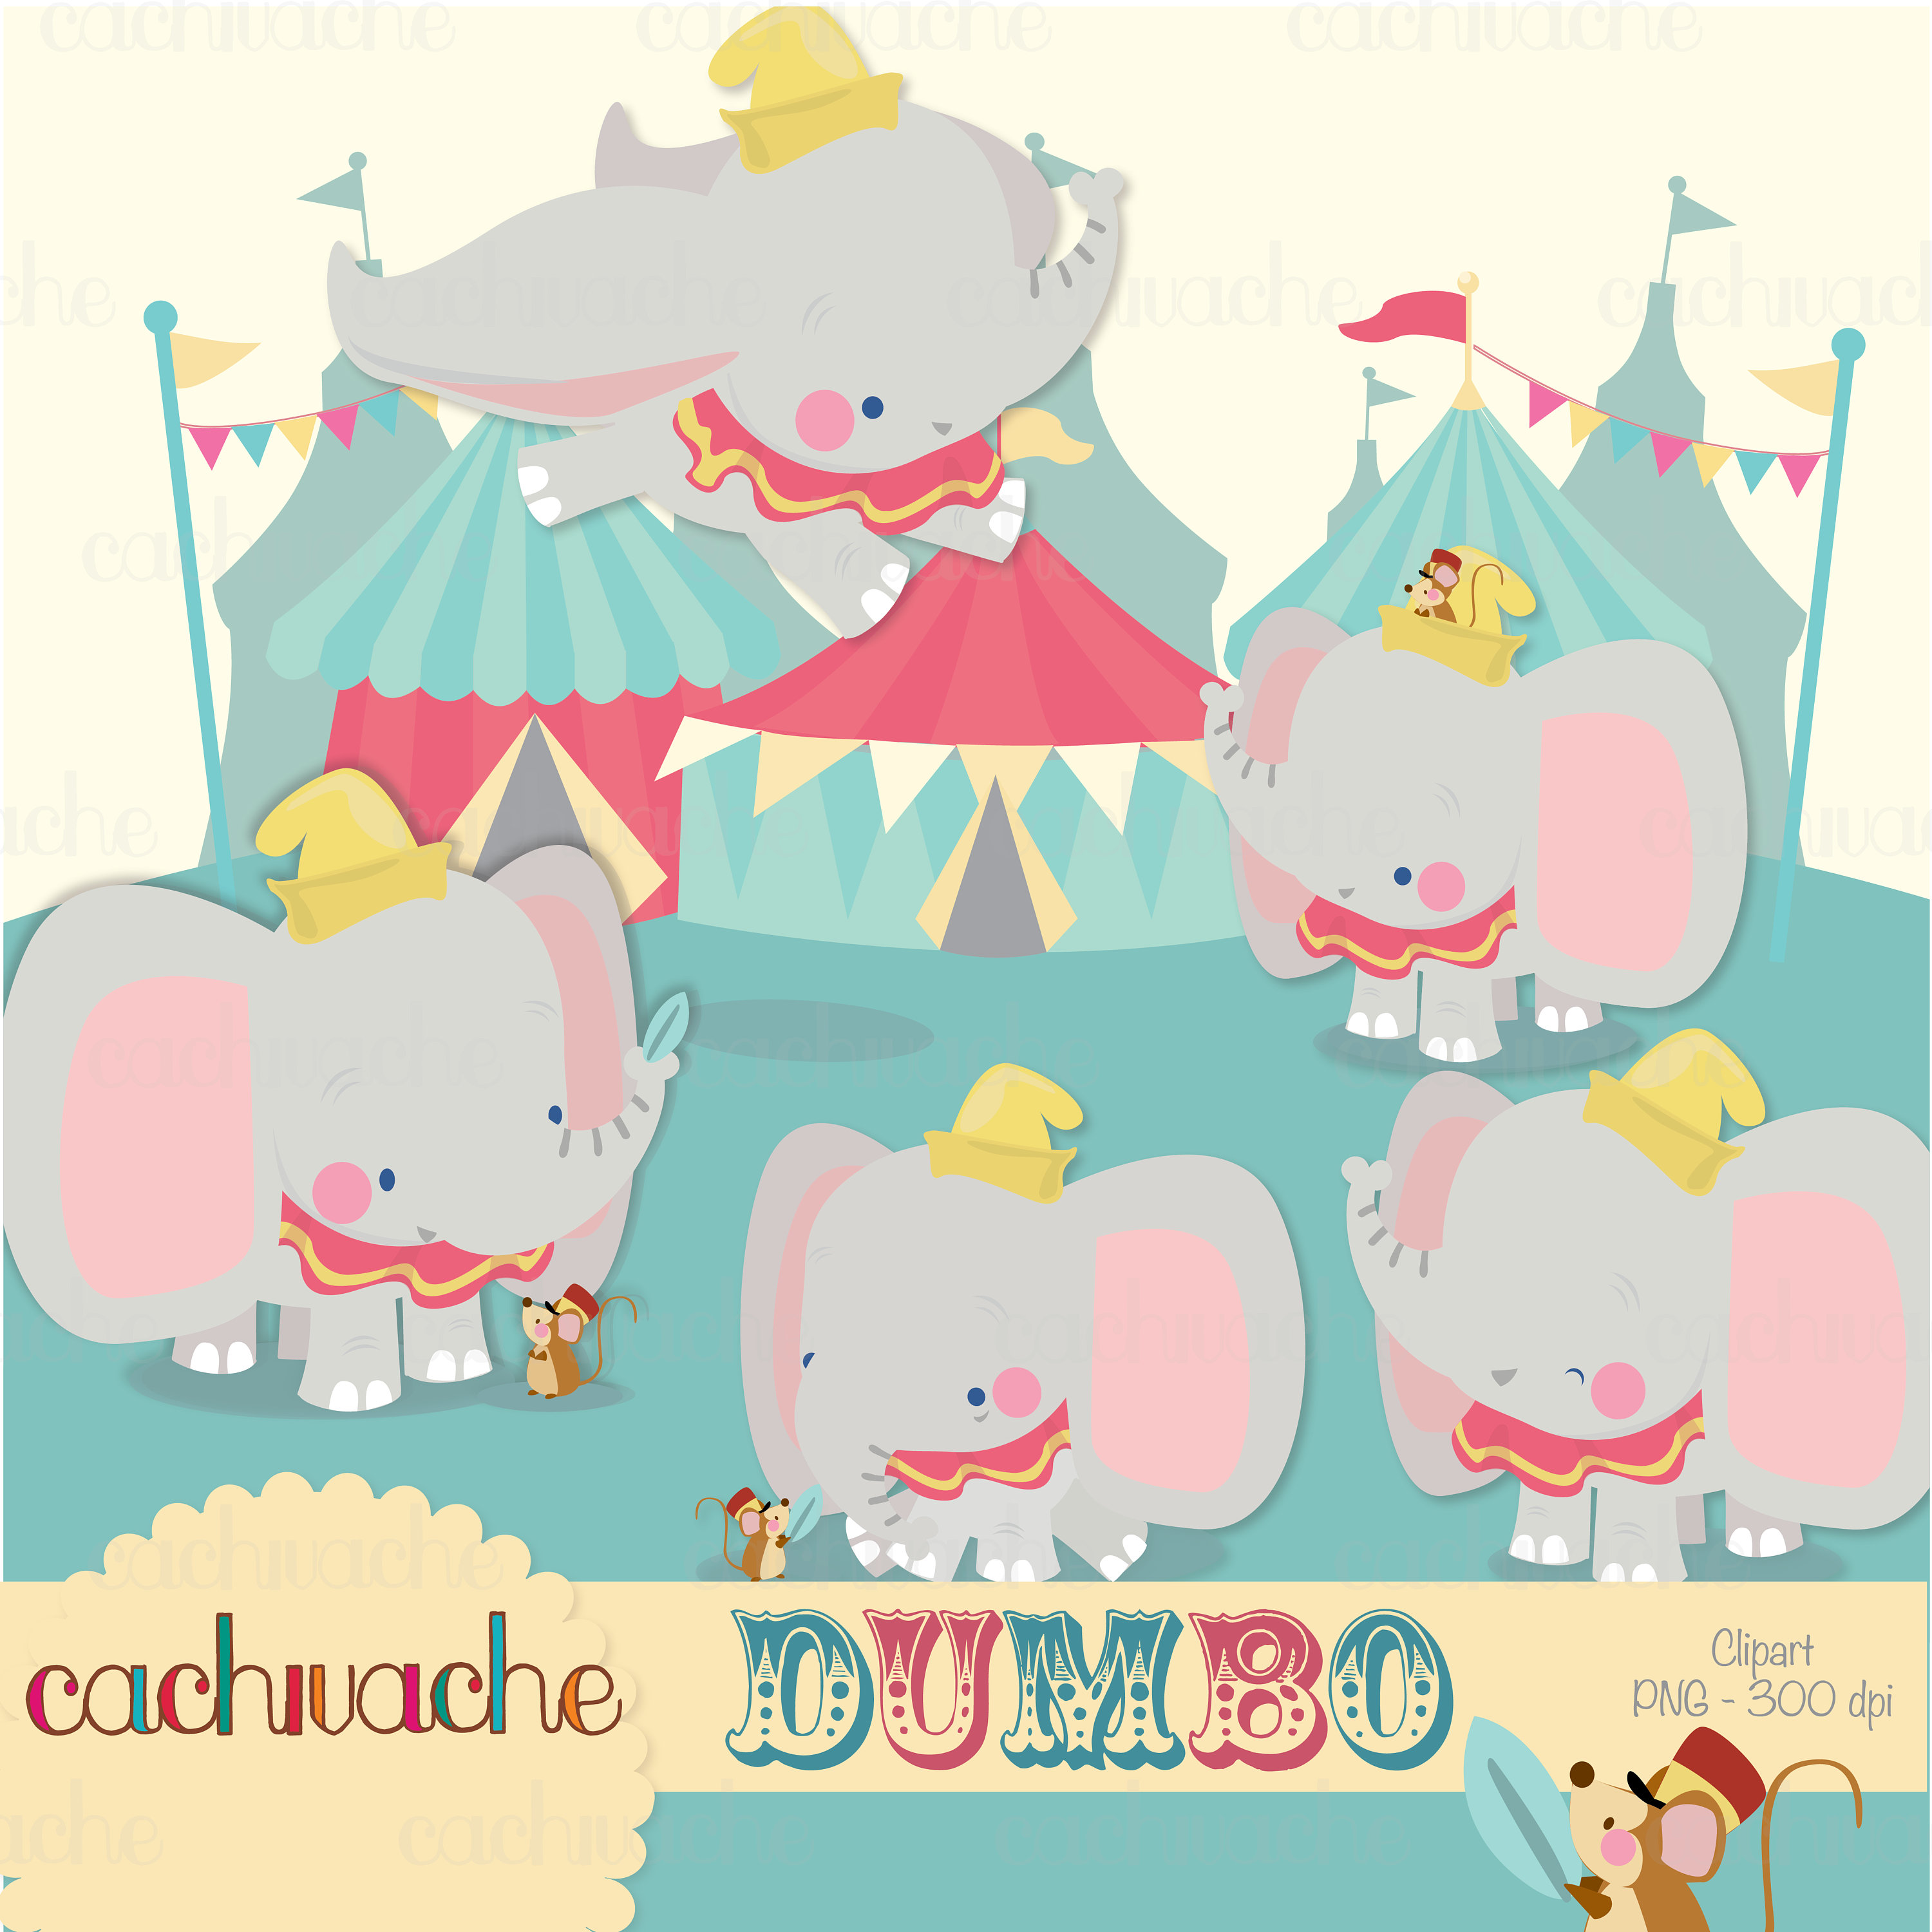 Dumbo clipart , Disney dumbo clipart, cute little elephant and circus  clipart PNG and JPG in HQ.